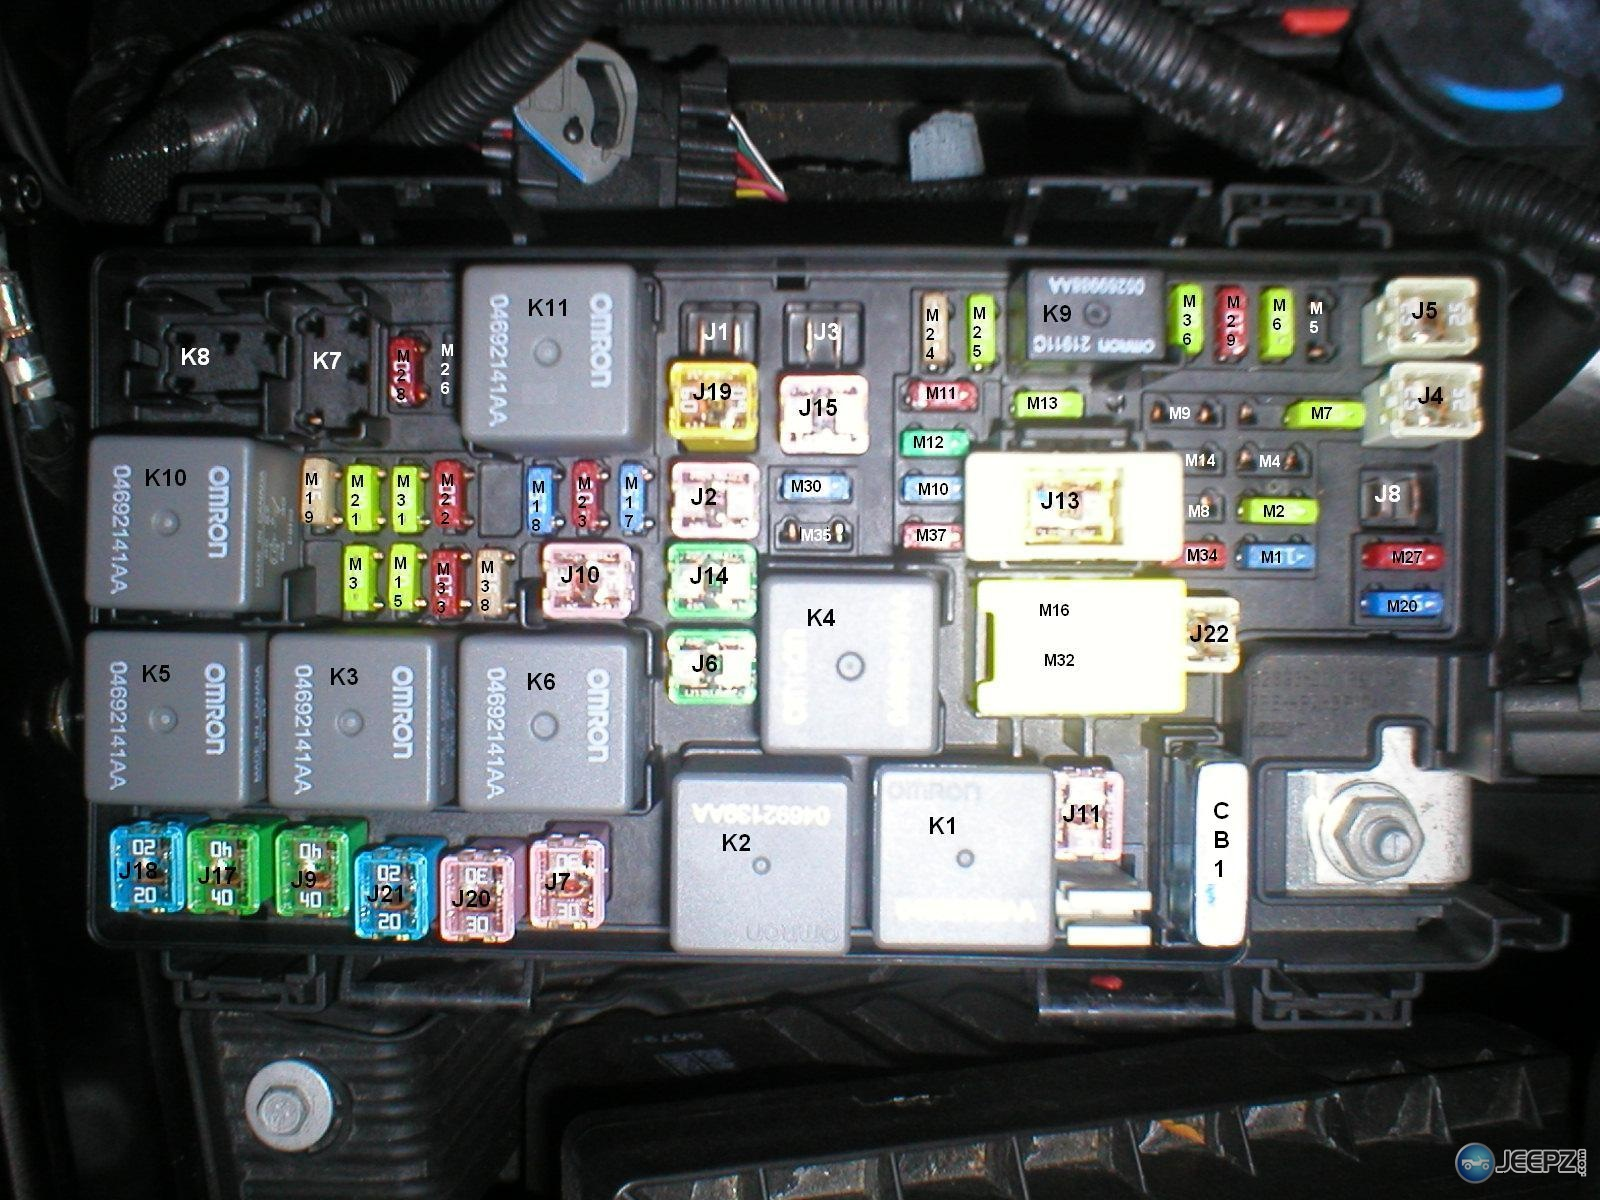 28602 Jeep Jk 2009 Fuse Map Layout Diagram on m38 wiring diagram